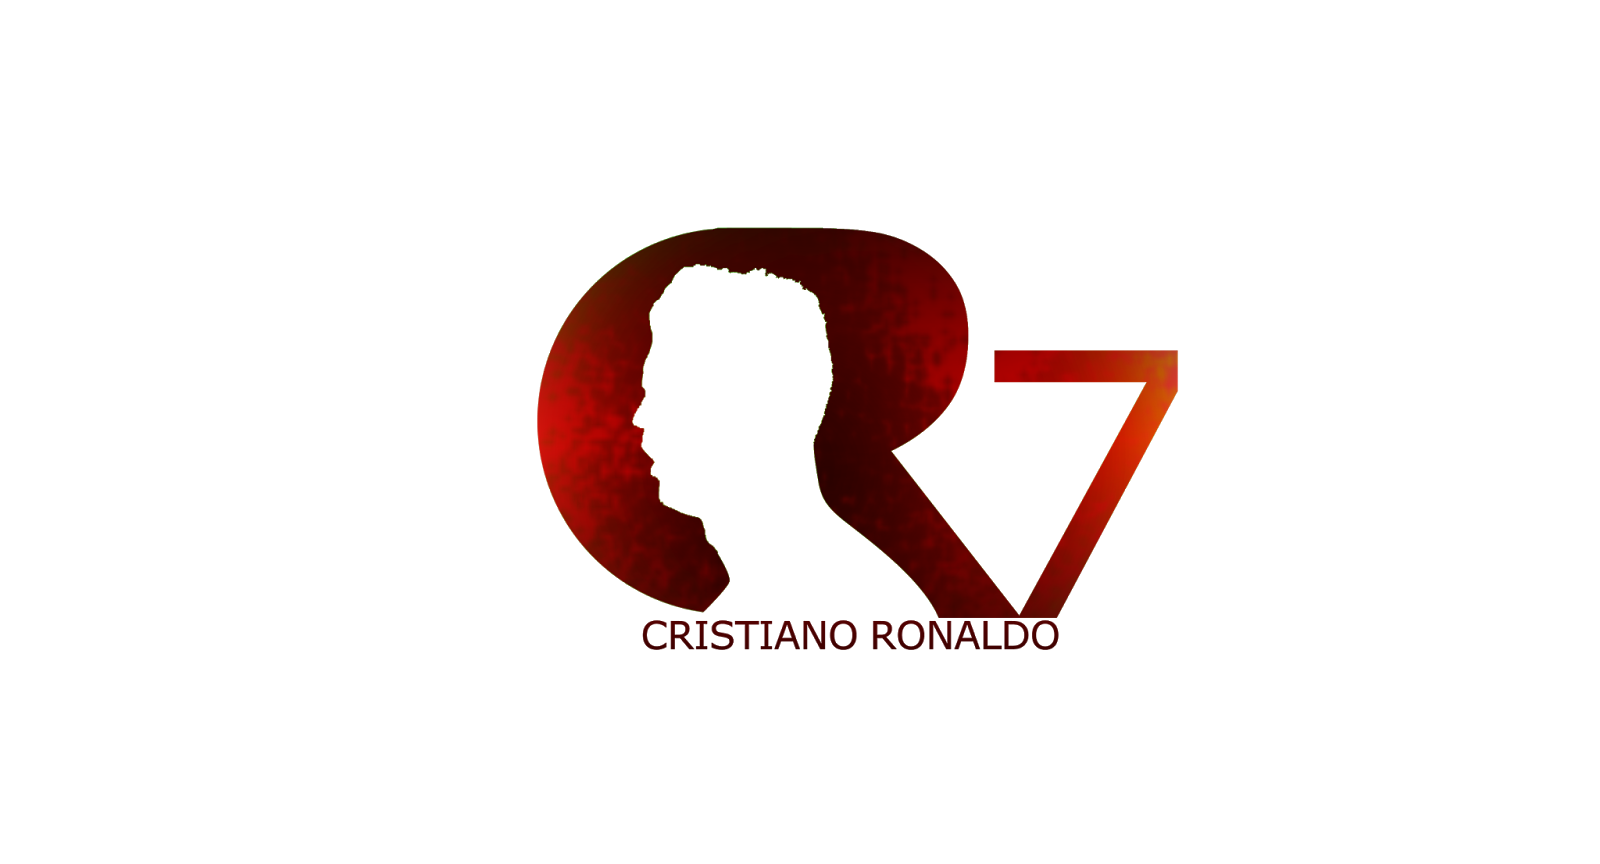 Fiverr guru cristiano ronaldo cr7 logo adobe photoshop cs6 tutorial - Christiano ronaldo logo ...